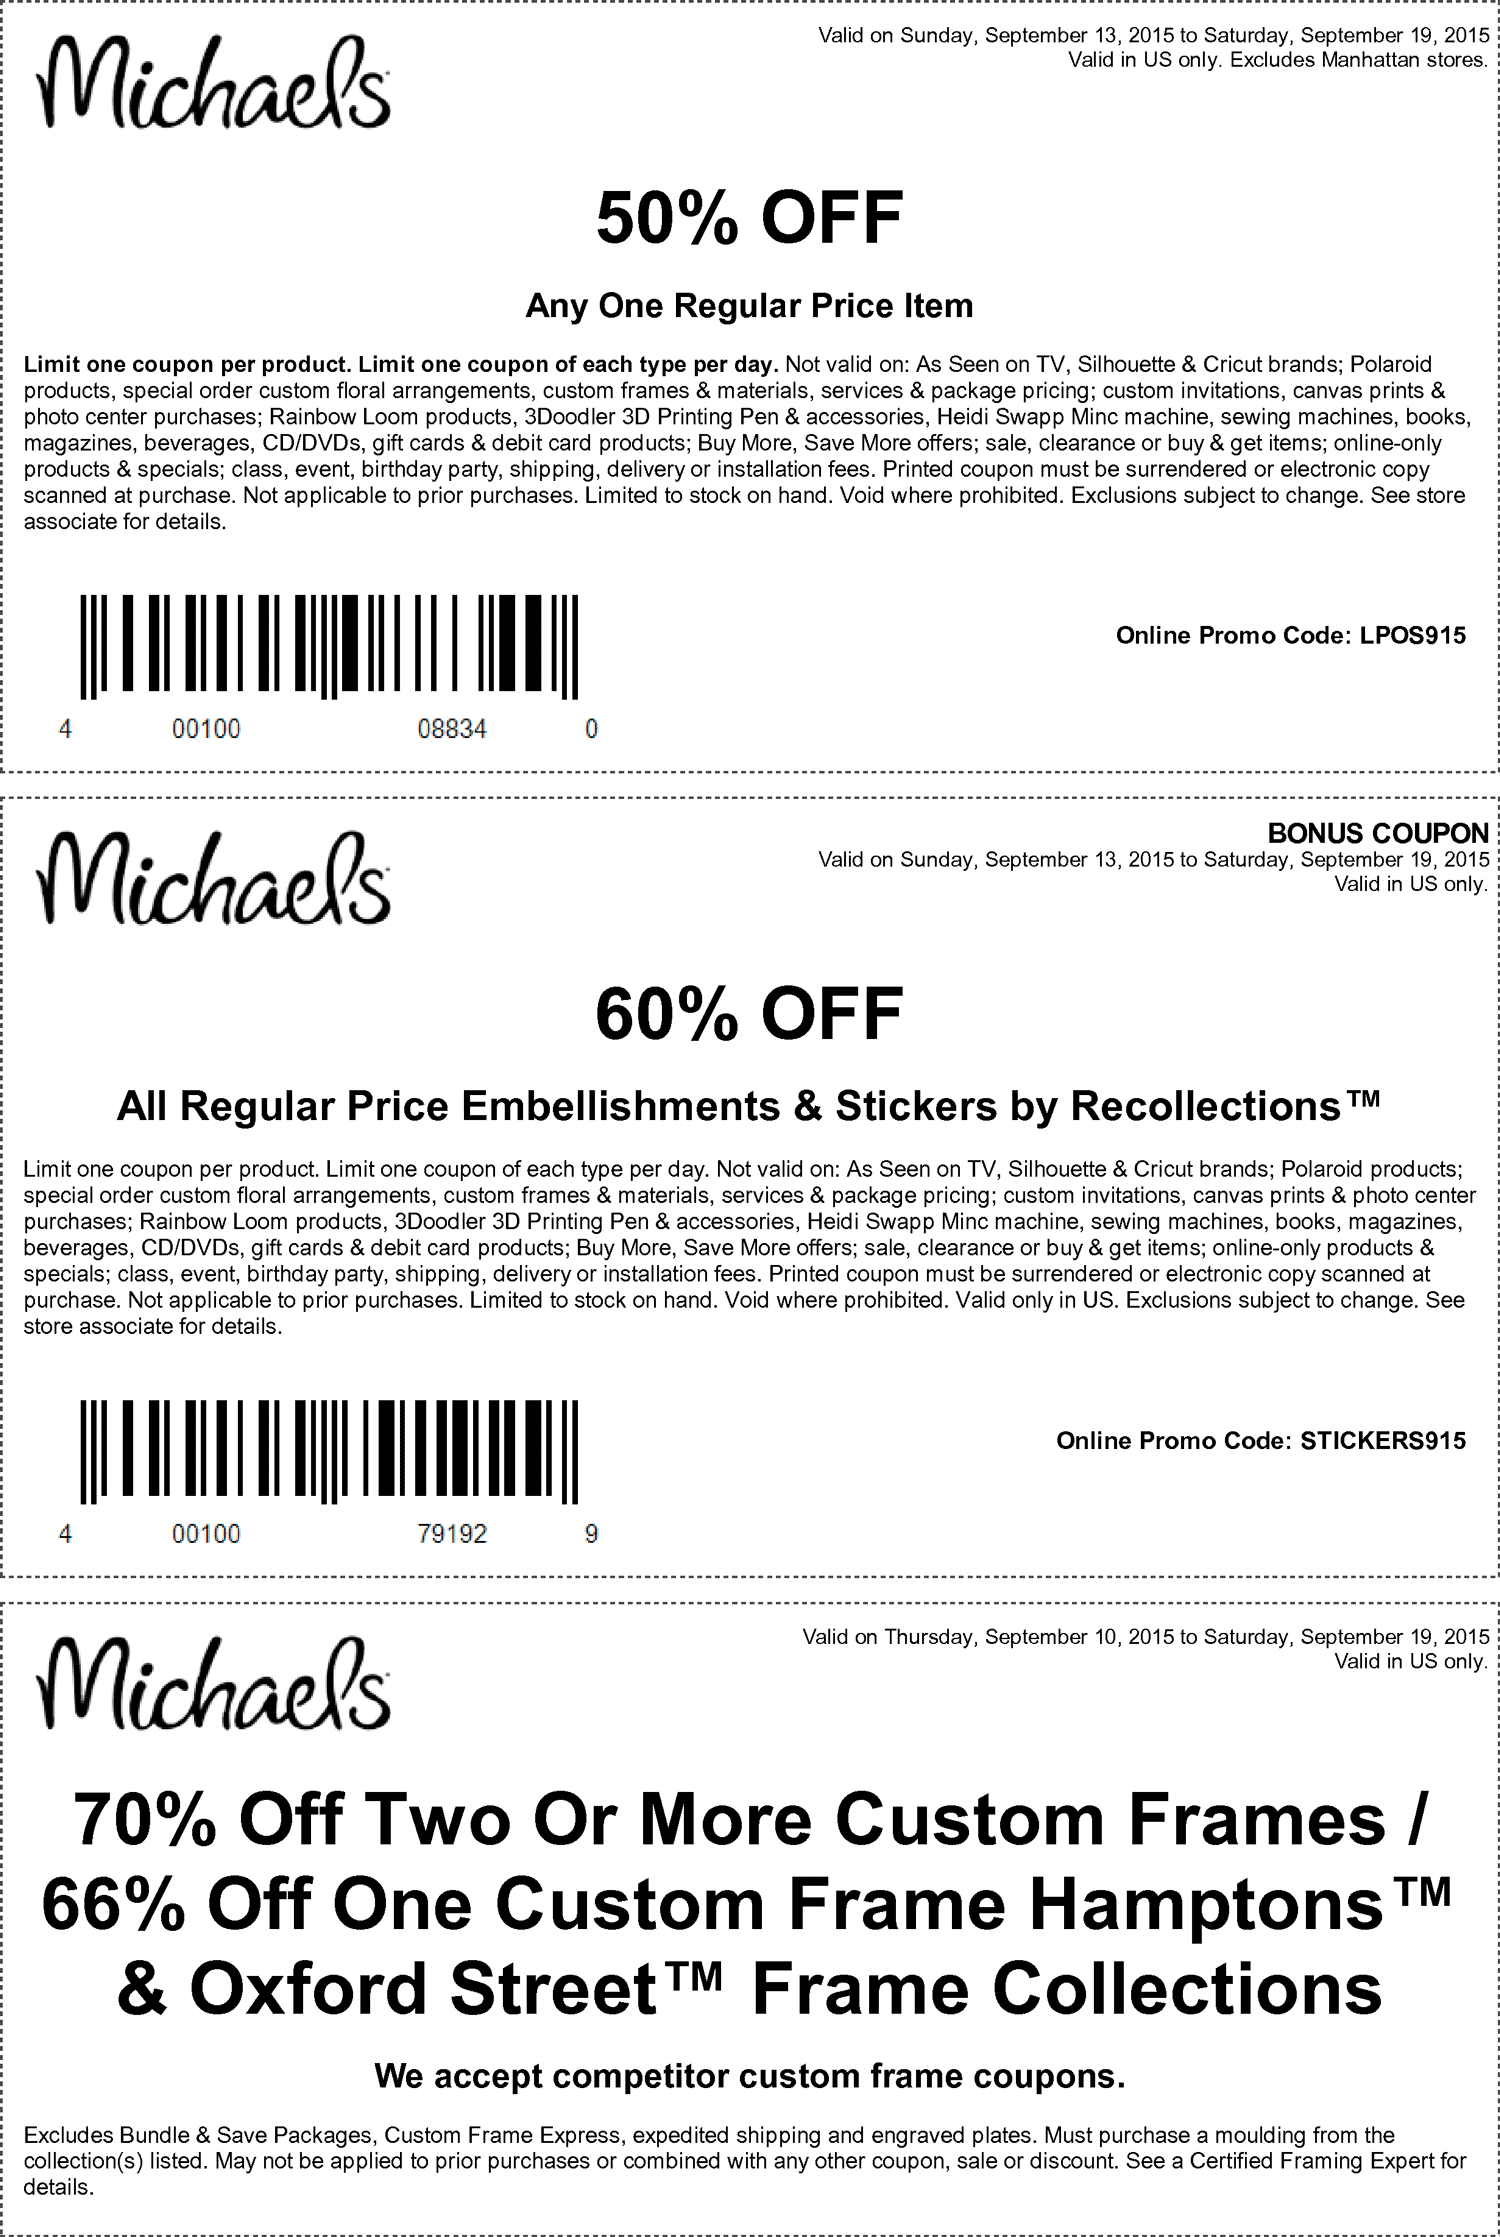 Michaels Coupon September 2017 50% off a single item at Michaels, or online via promo code LPOS915